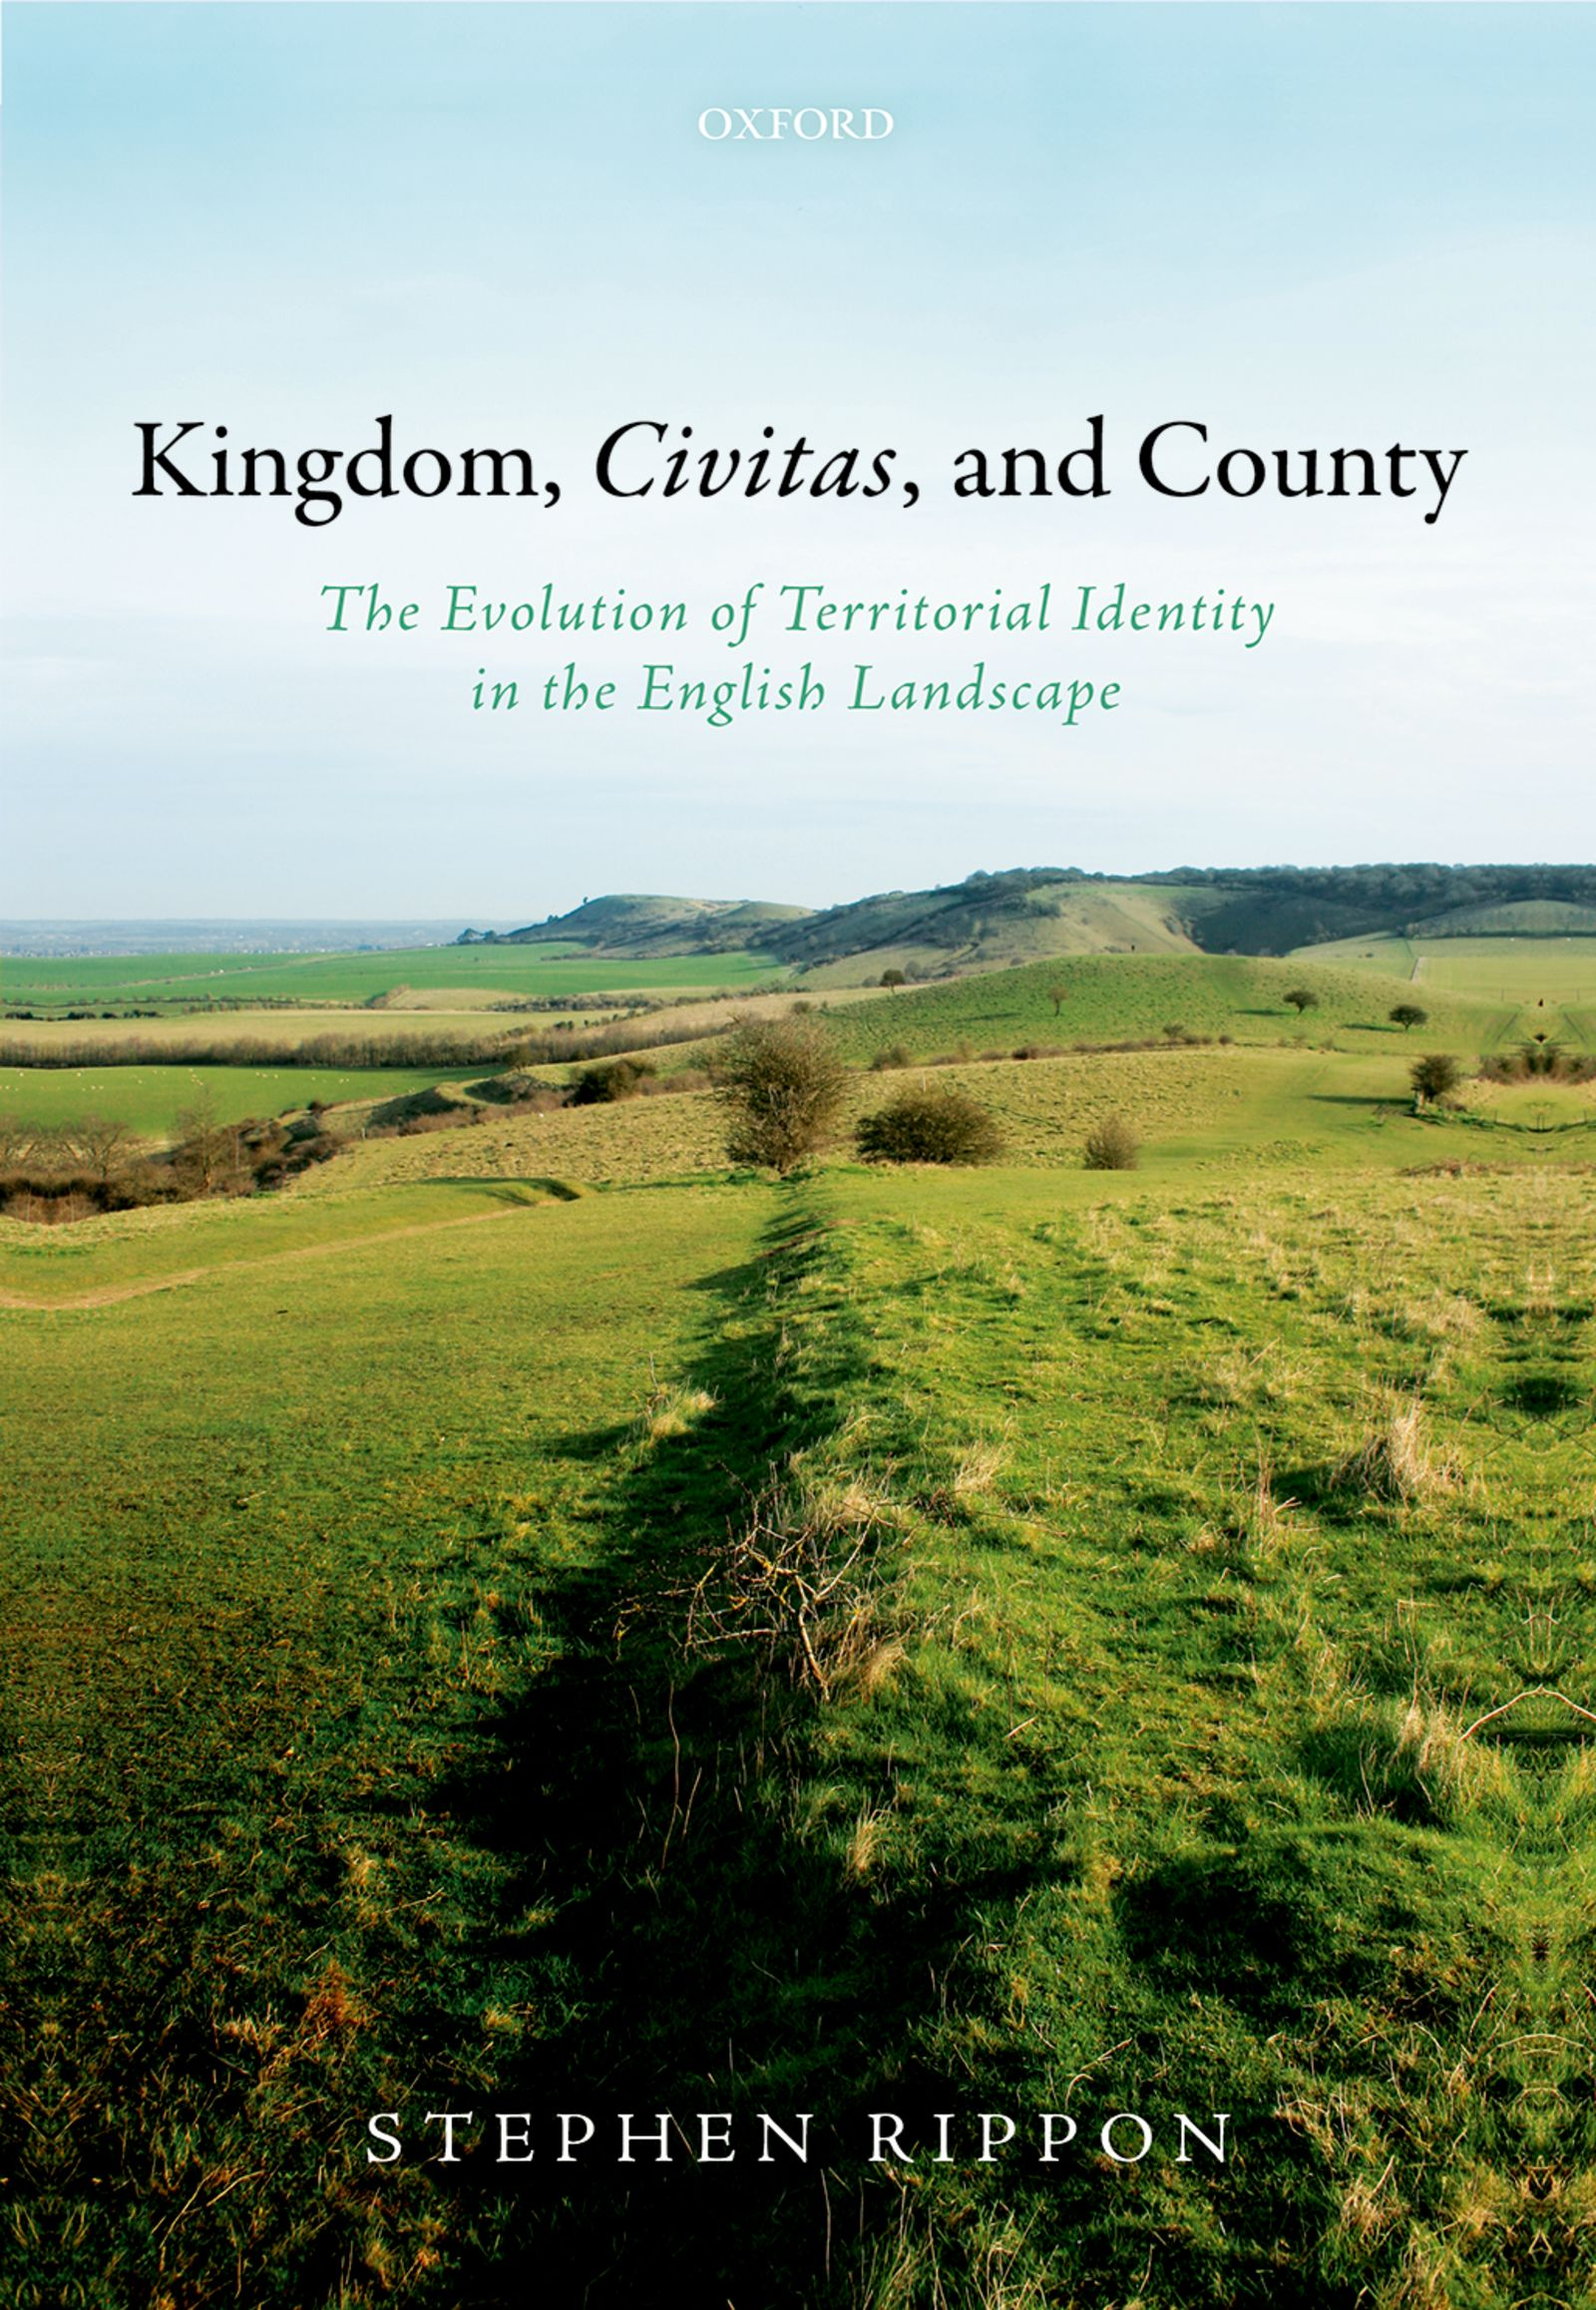 Kingdom, Civitas, and CountyThe Evolution of Territorial Identity in the English Landscape